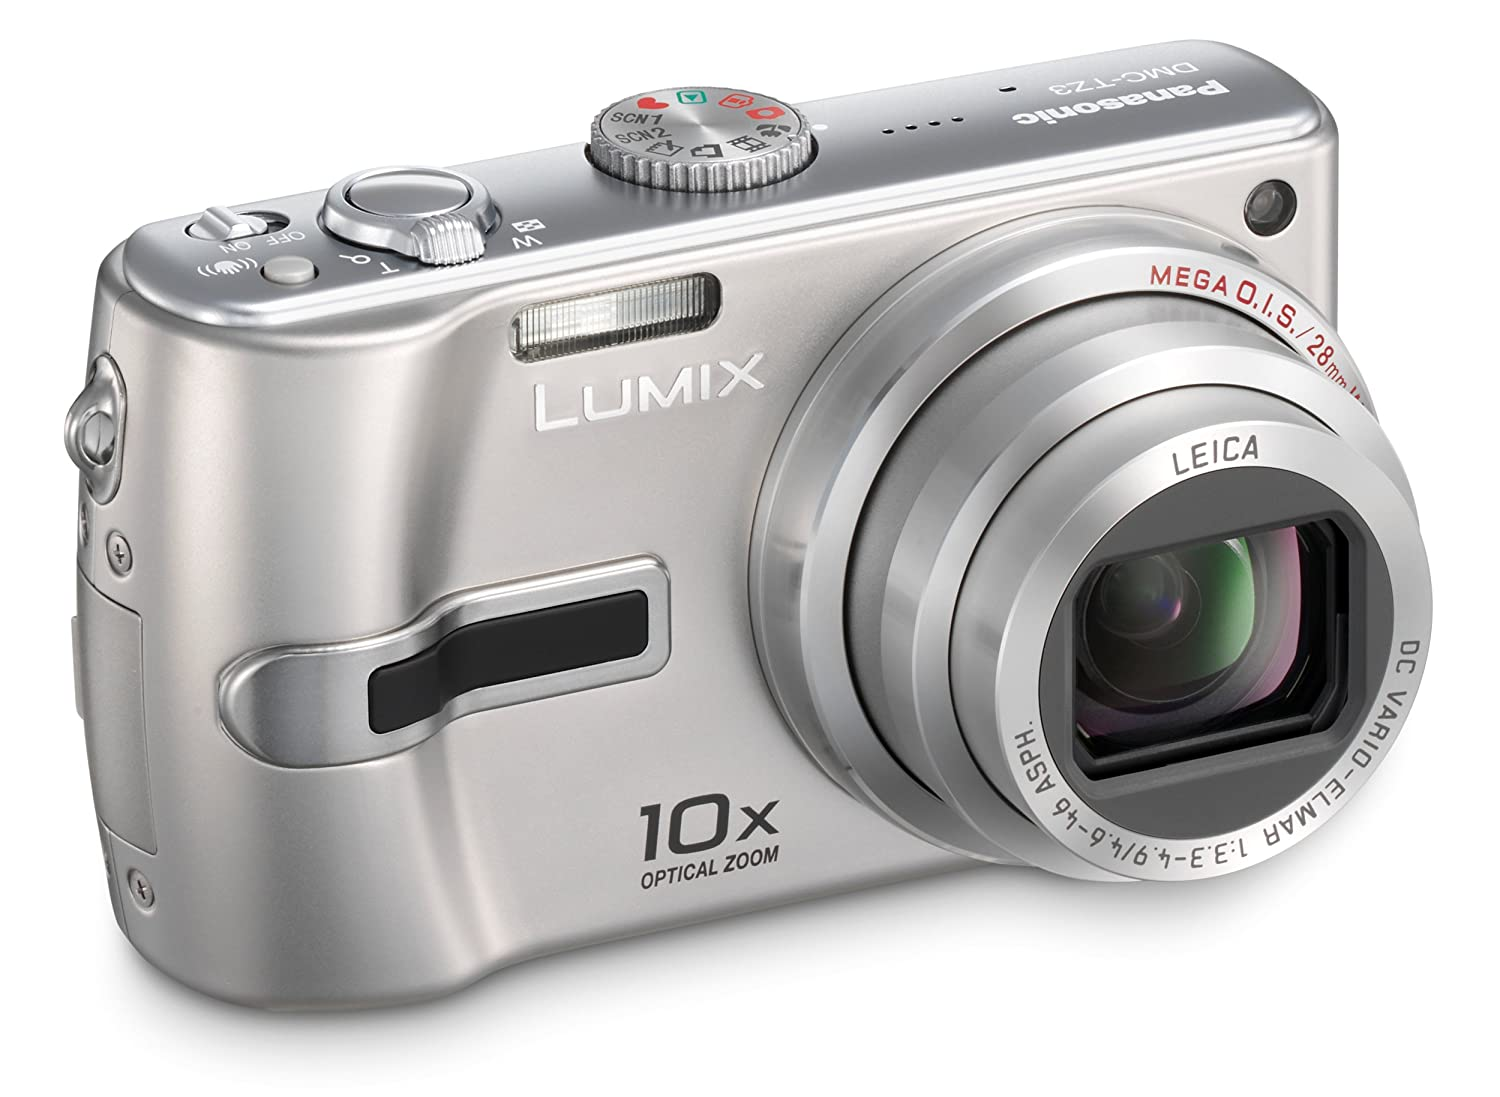 Amazon.com : Panasonic Lumix DMC-TZ3S 7.2MP Digital Camera with 10x Optical  Image Stabilized Zoom (Silver) : Point And Shoot Digital Cameras : Camera &  ...